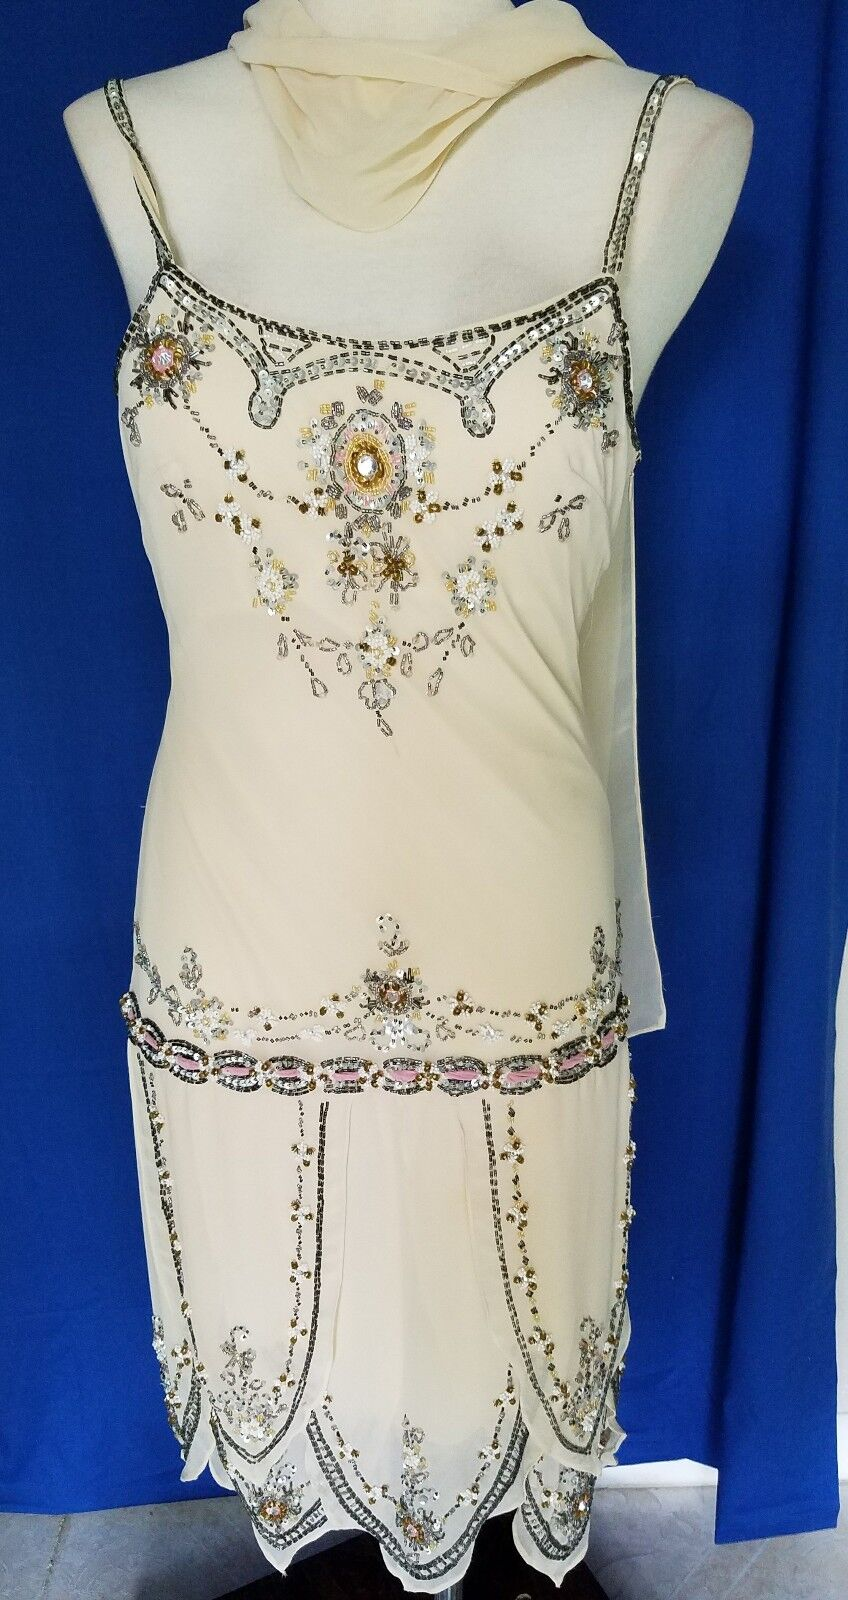 Chicas 1920s Styling Heavily Embellished Silky Cocktail Dress Size Small